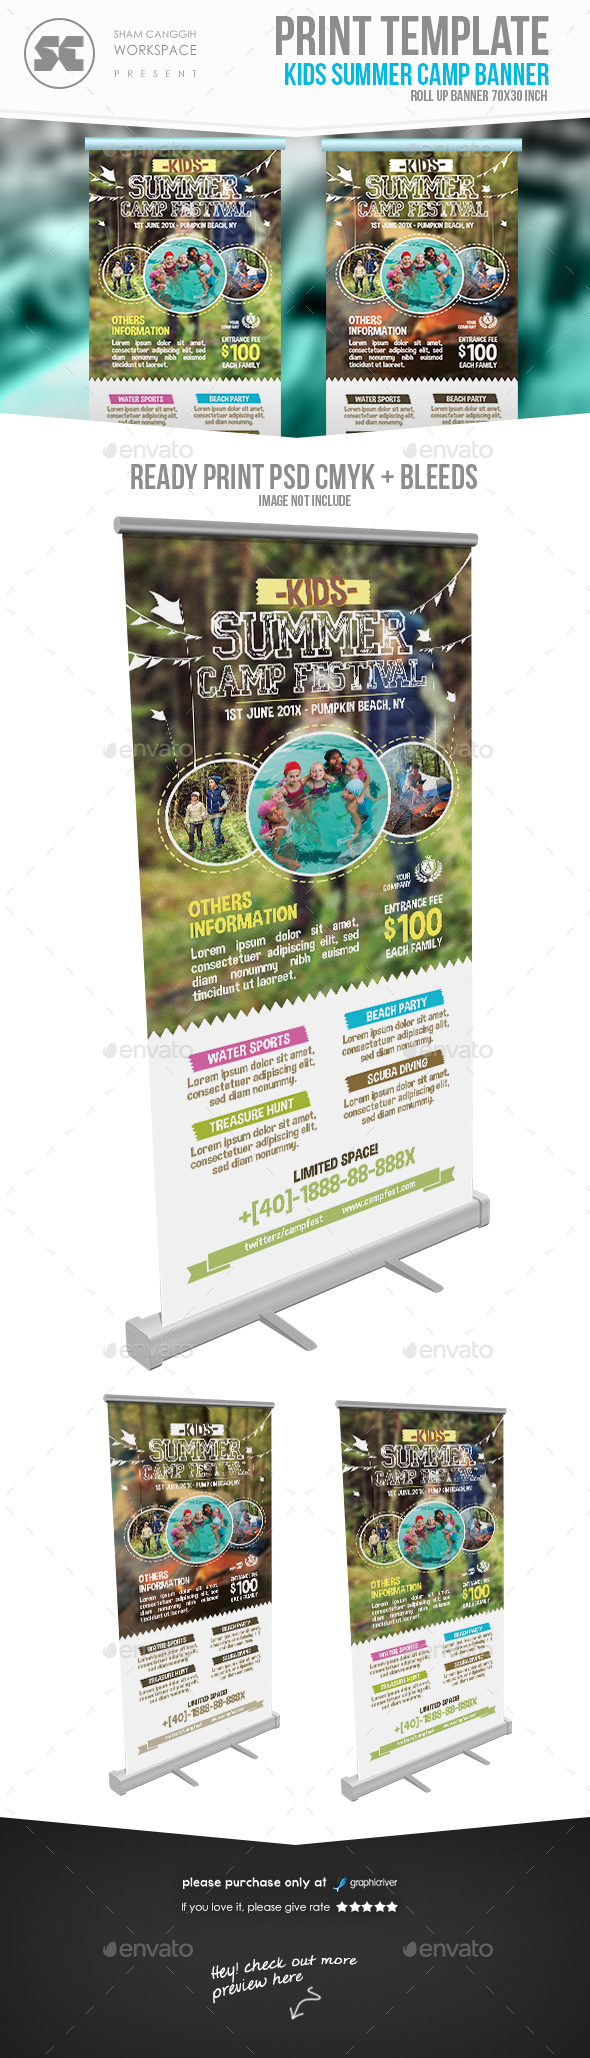 Summer Camp Banner - Signage Print Templates